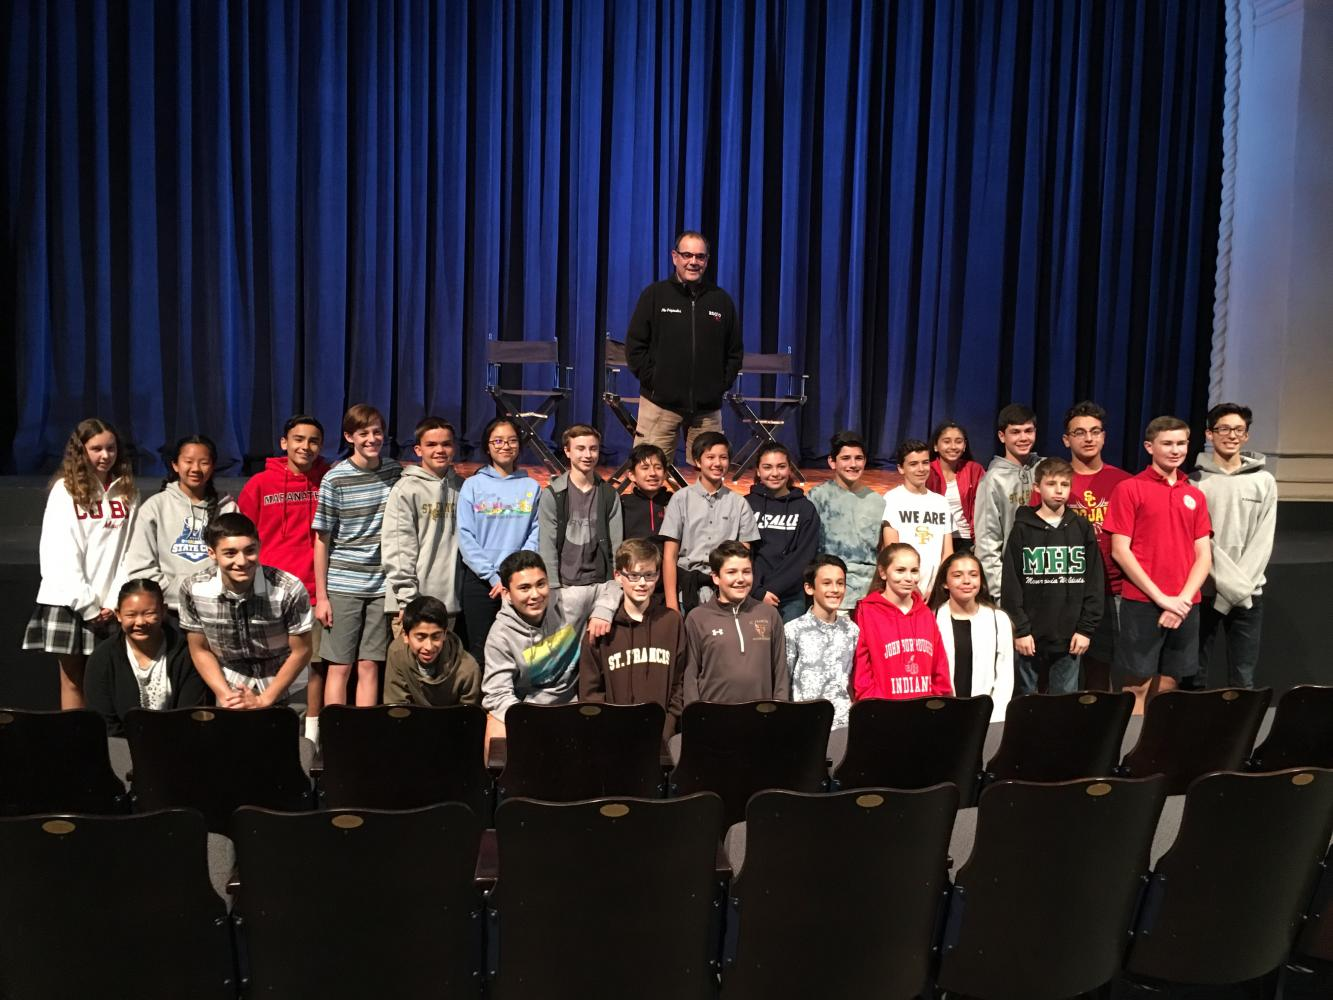 8th+Grade+with+an+Actor+from+the+Play